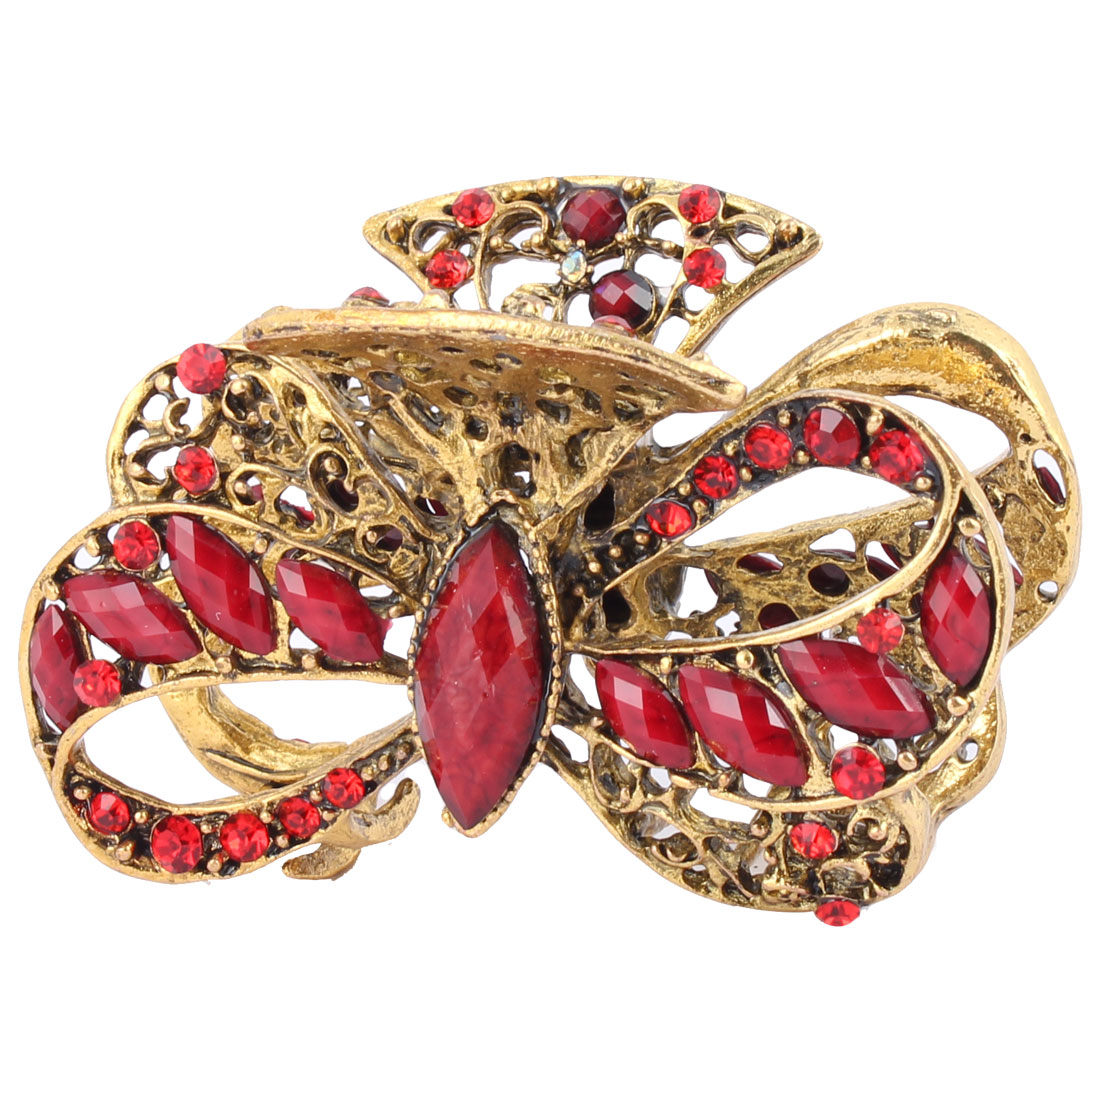 Woman Faux Rhinestone Decor Hollow Out Claw Hairstyle Hair Clip Barrette Red